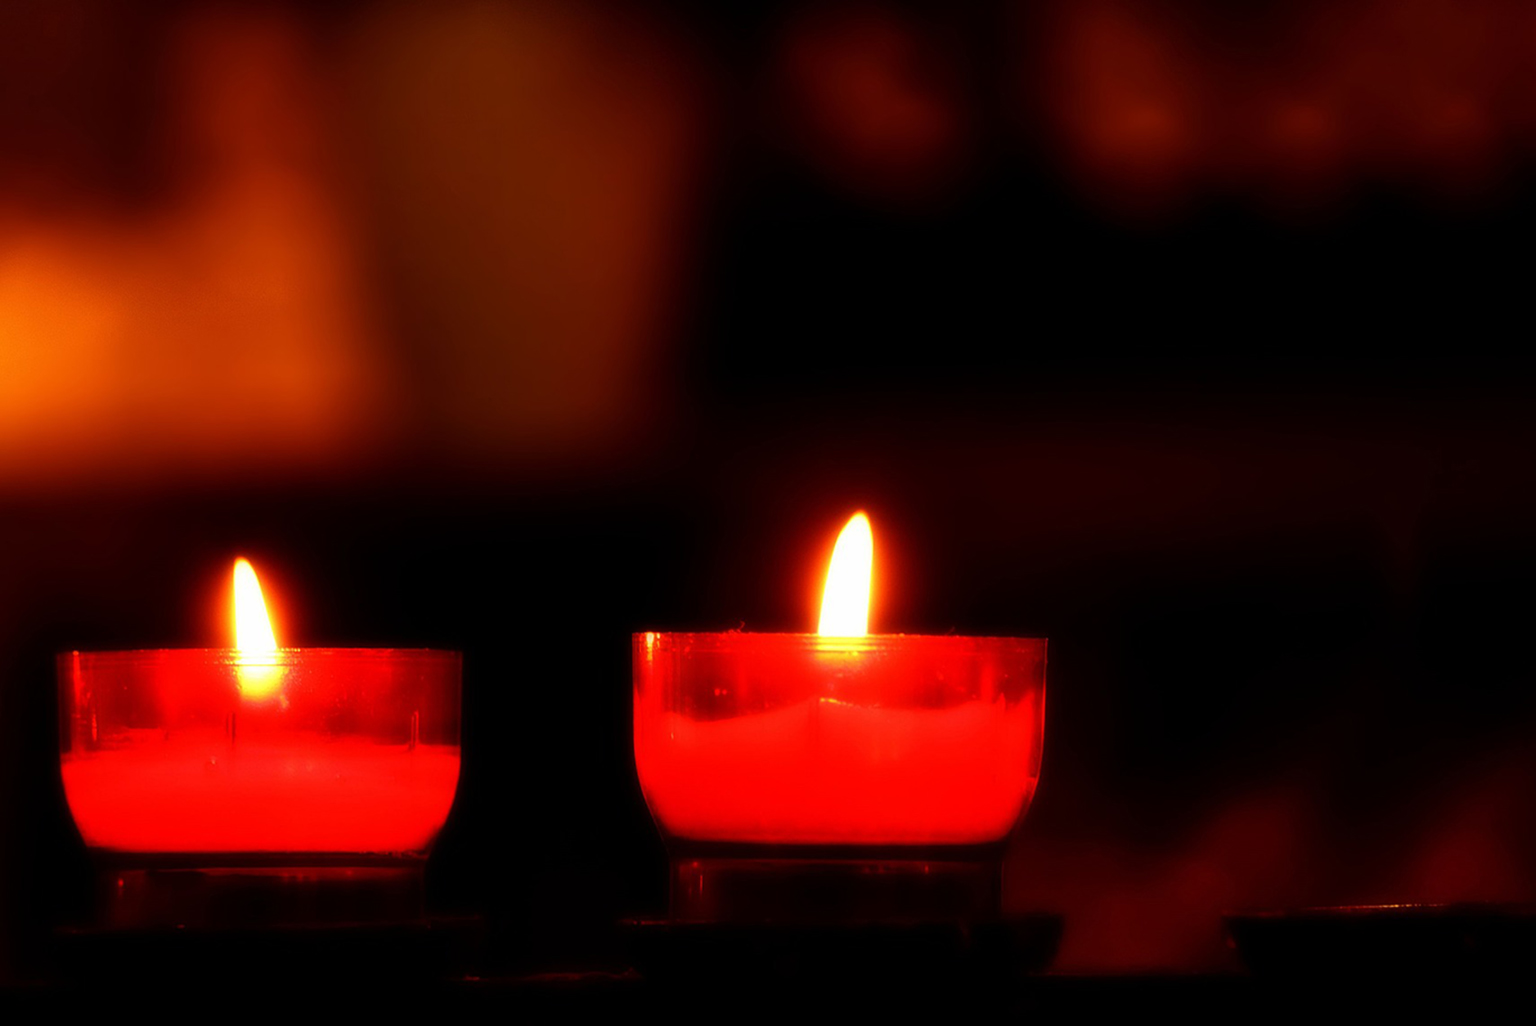 Candles with reddish hue on a hazy dark background